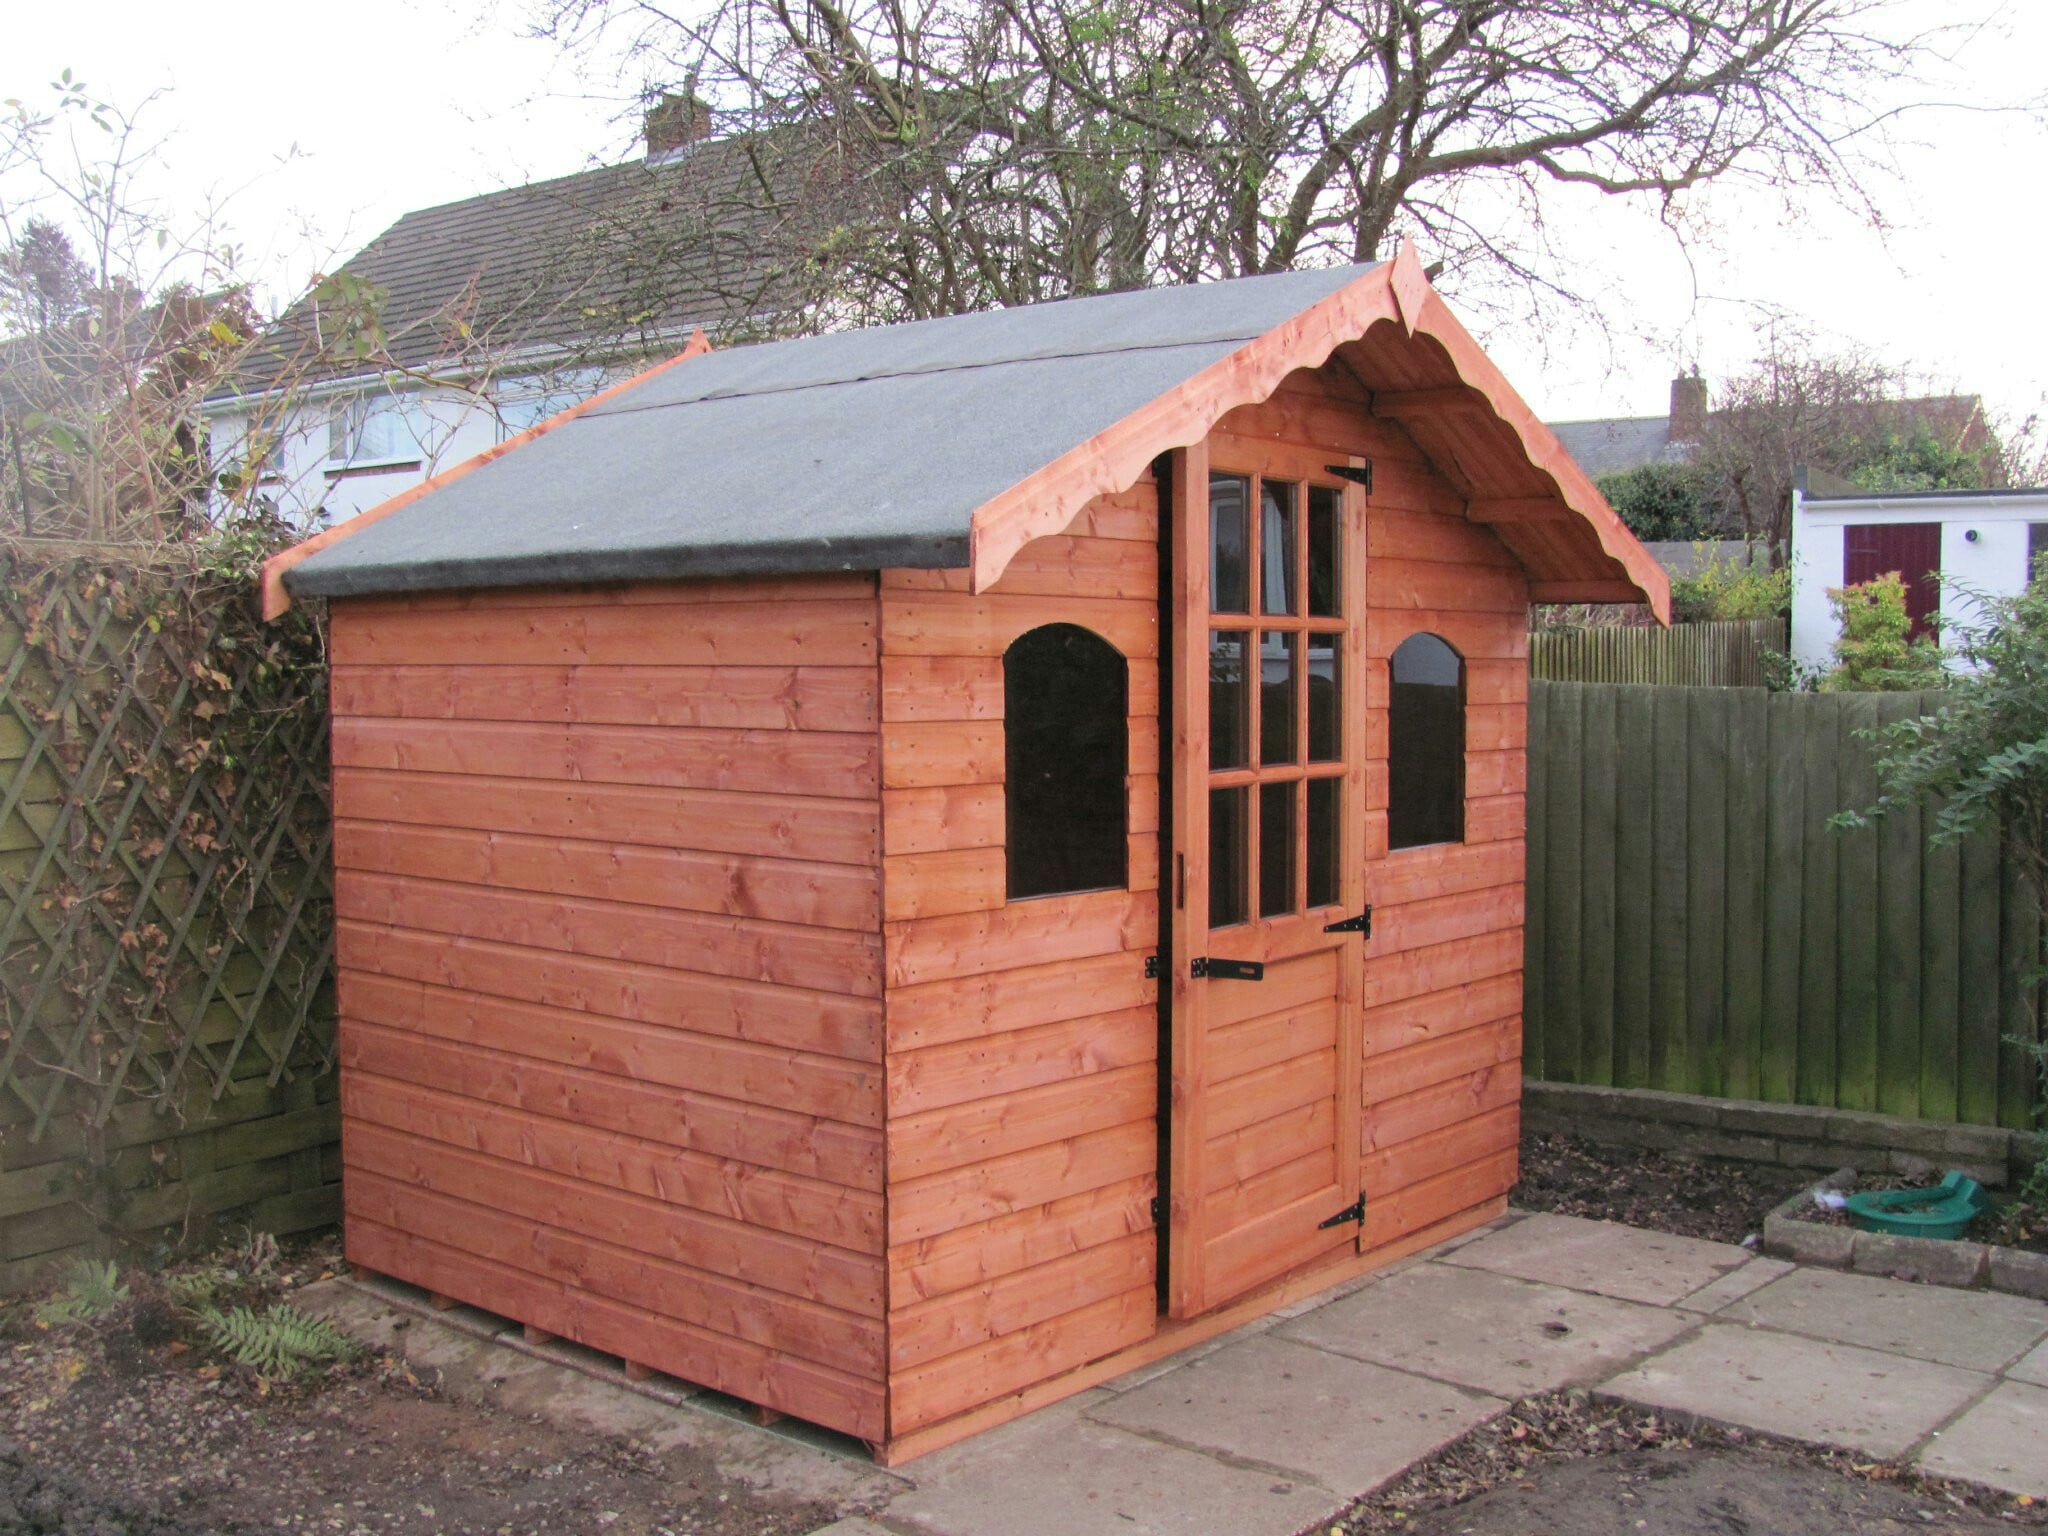 Swiss lodge shed no1 discount shedsno1 discount sheds for Inexpensive sheds